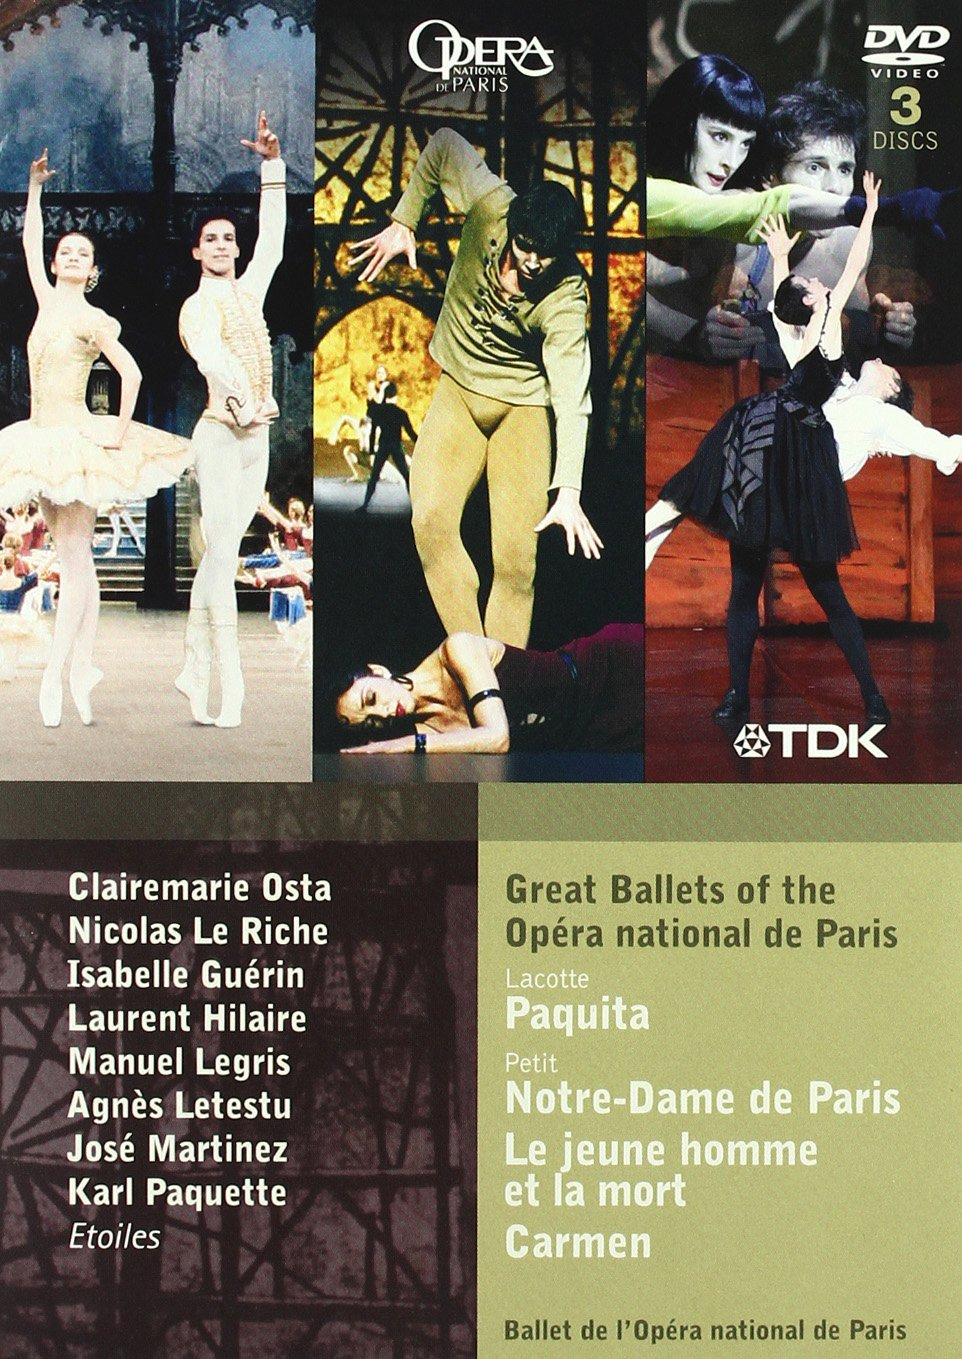 Great Ballets of the Opera National De Paris [DVD] [Import] B0040Y7F9G